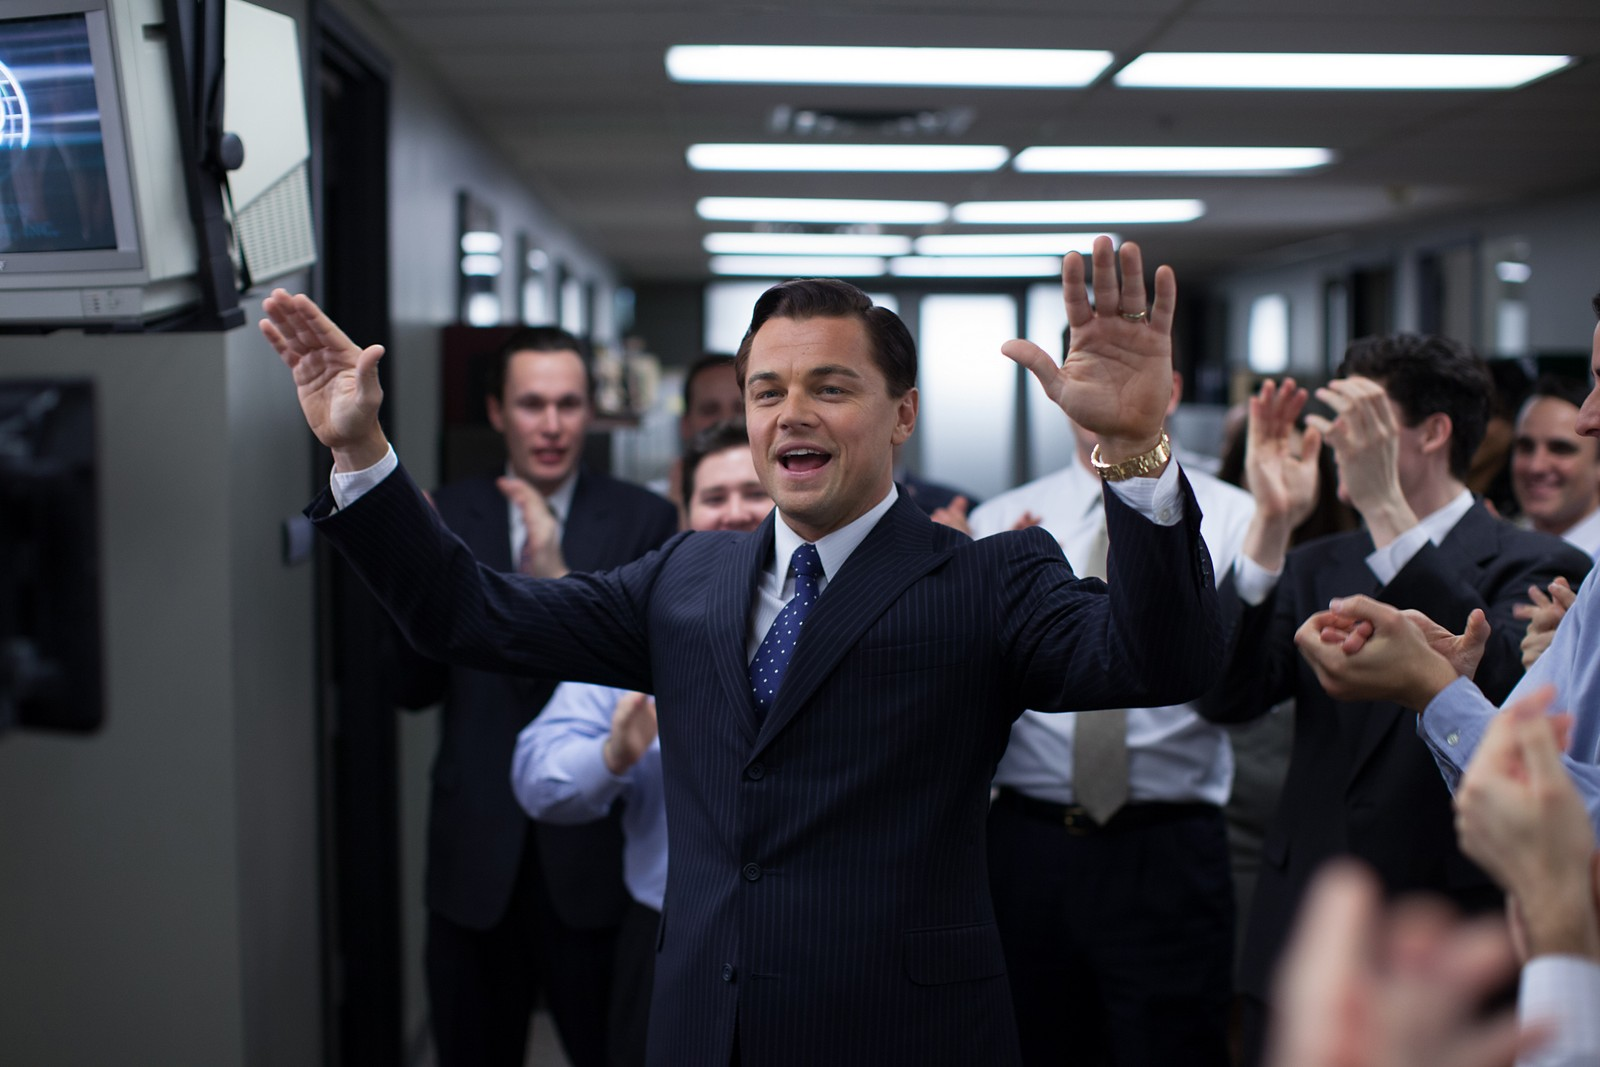 o is Jordan Belfort in THE WOLF OF WALL STREET